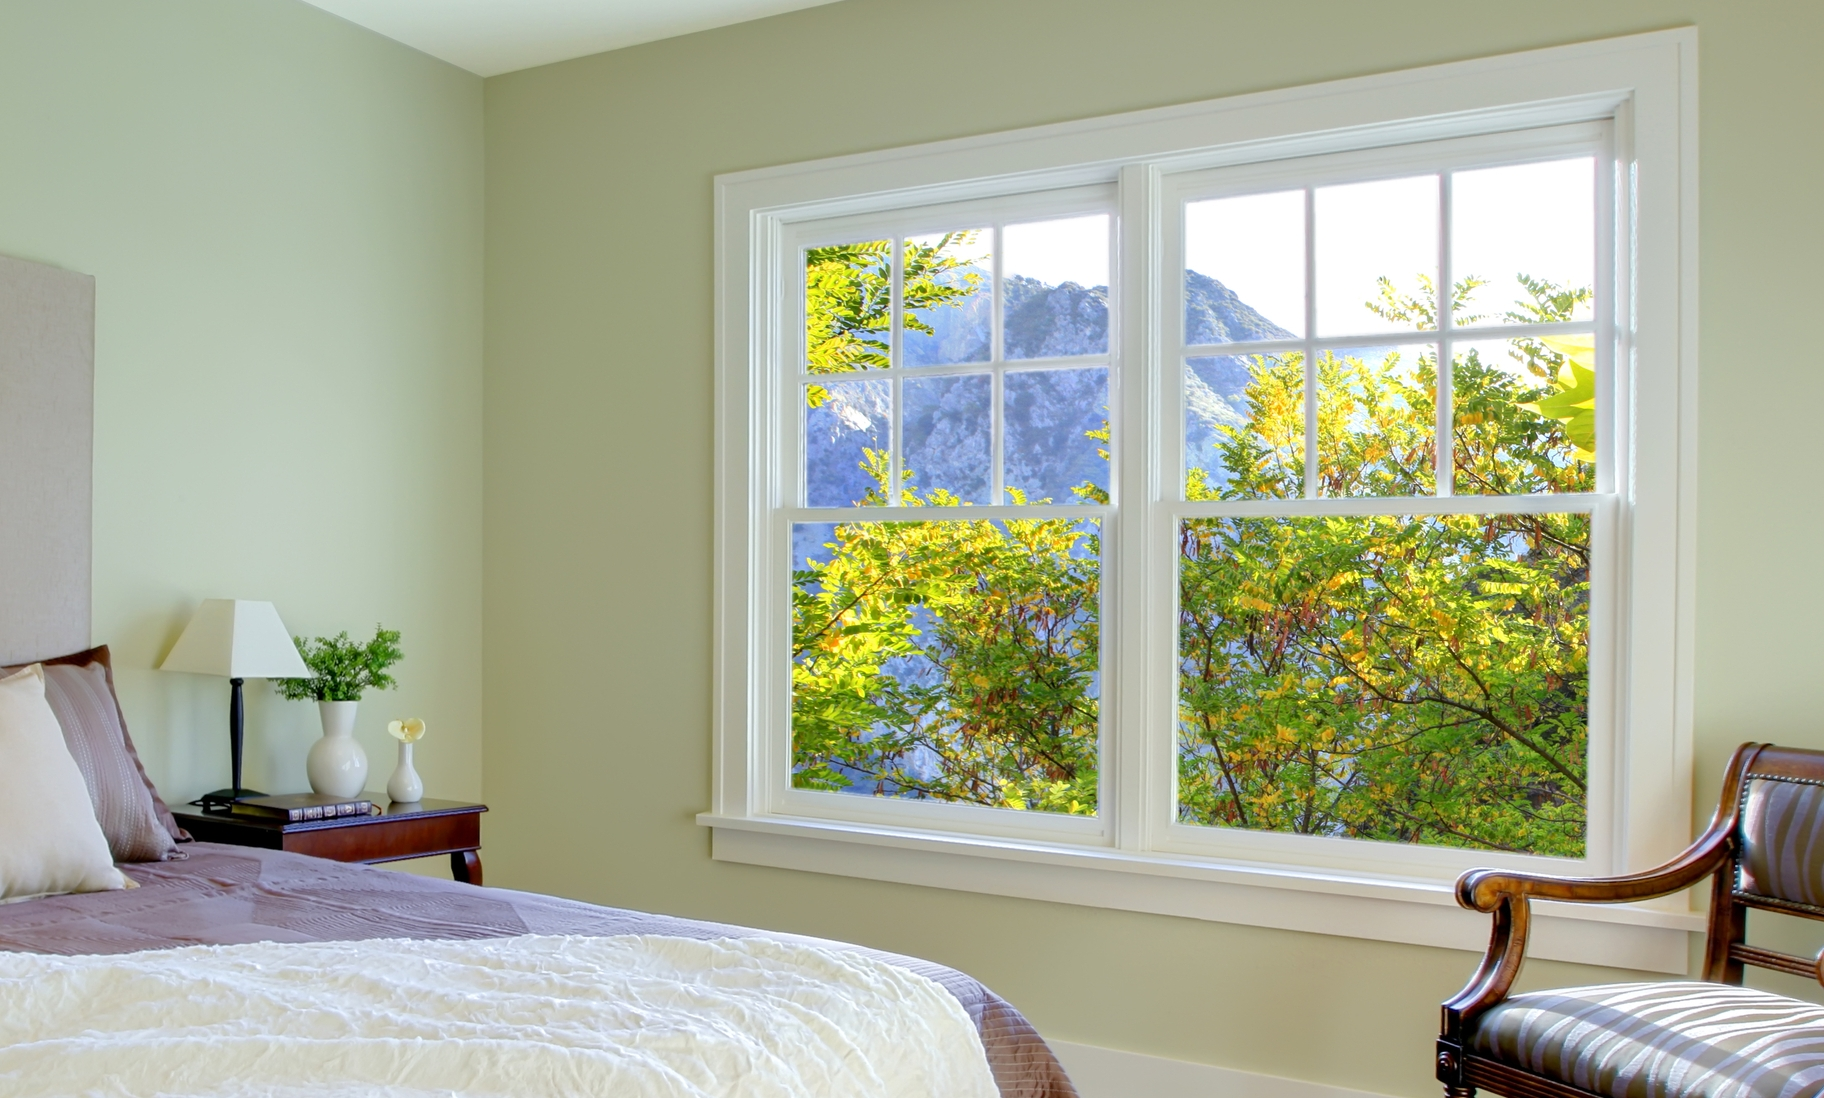 Best energy efficient windows to save electricity energy for Energy windows